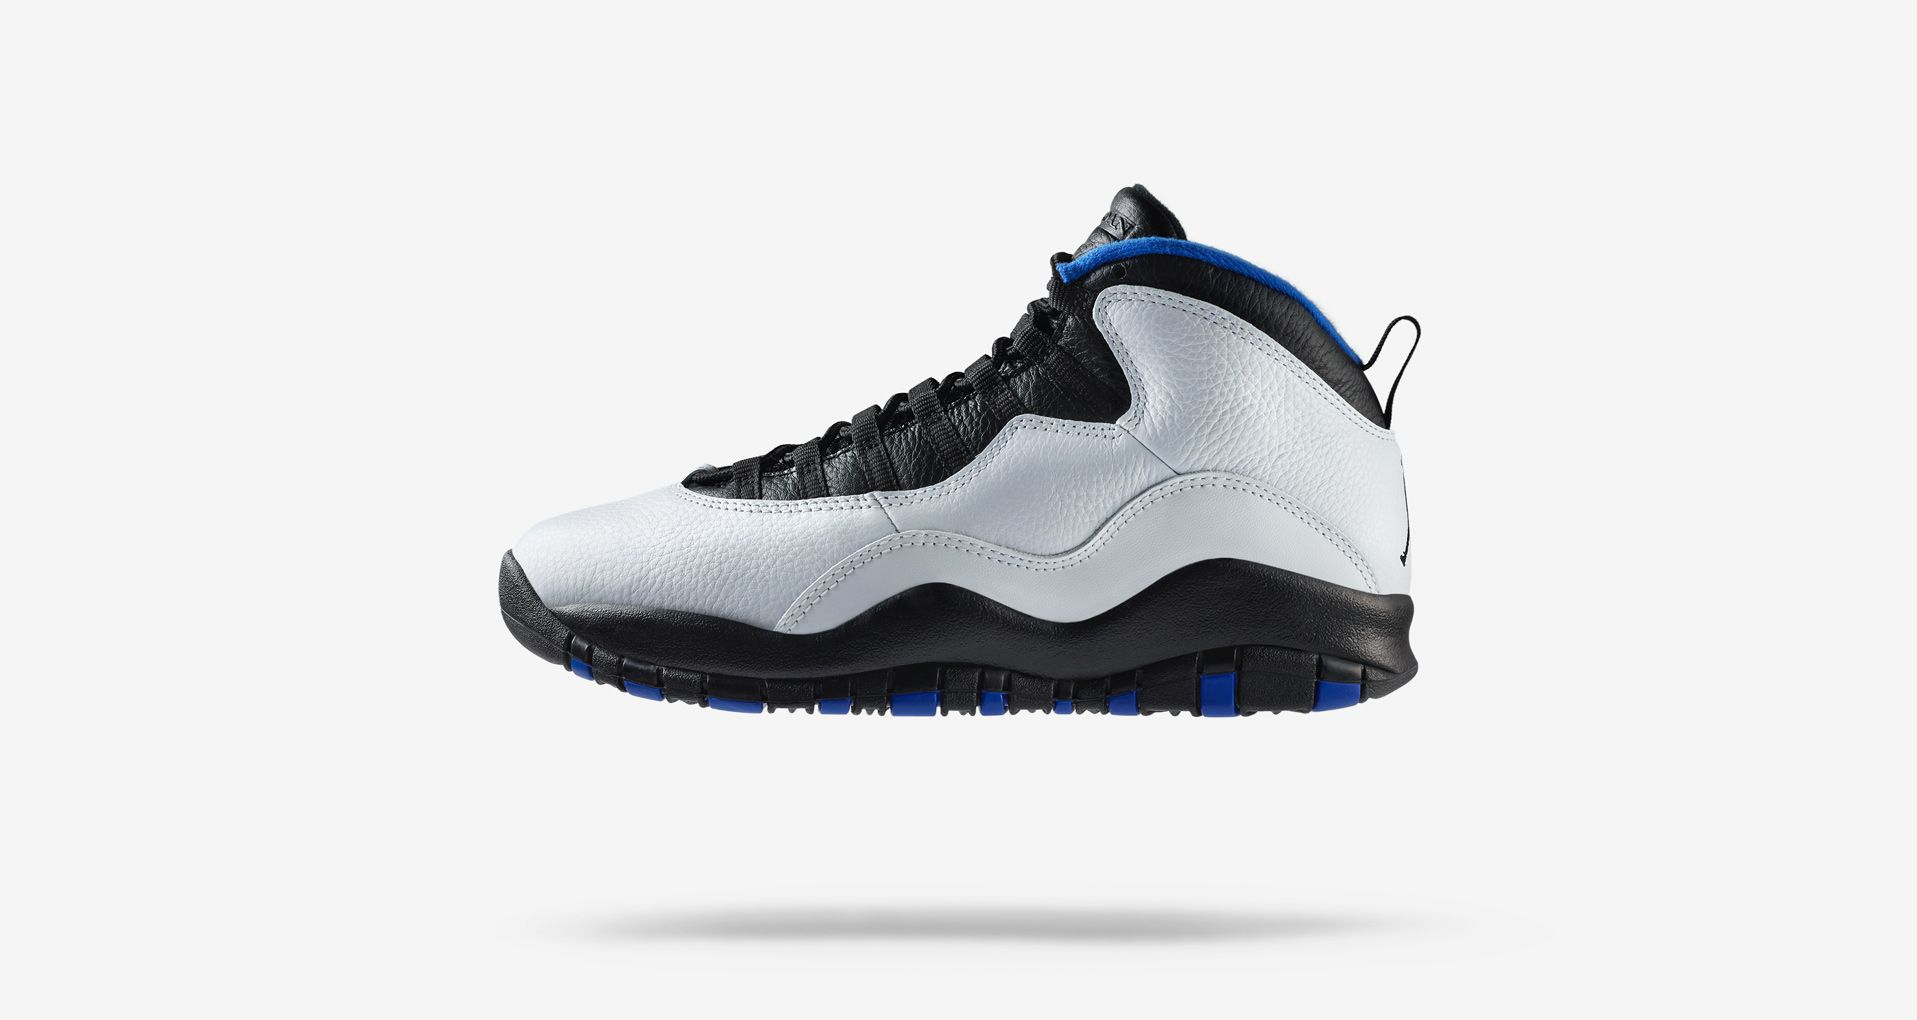 f0397aee2340d6 Air Jordan 10 Retro Orlando  White   Royal   Black  Release Date ...